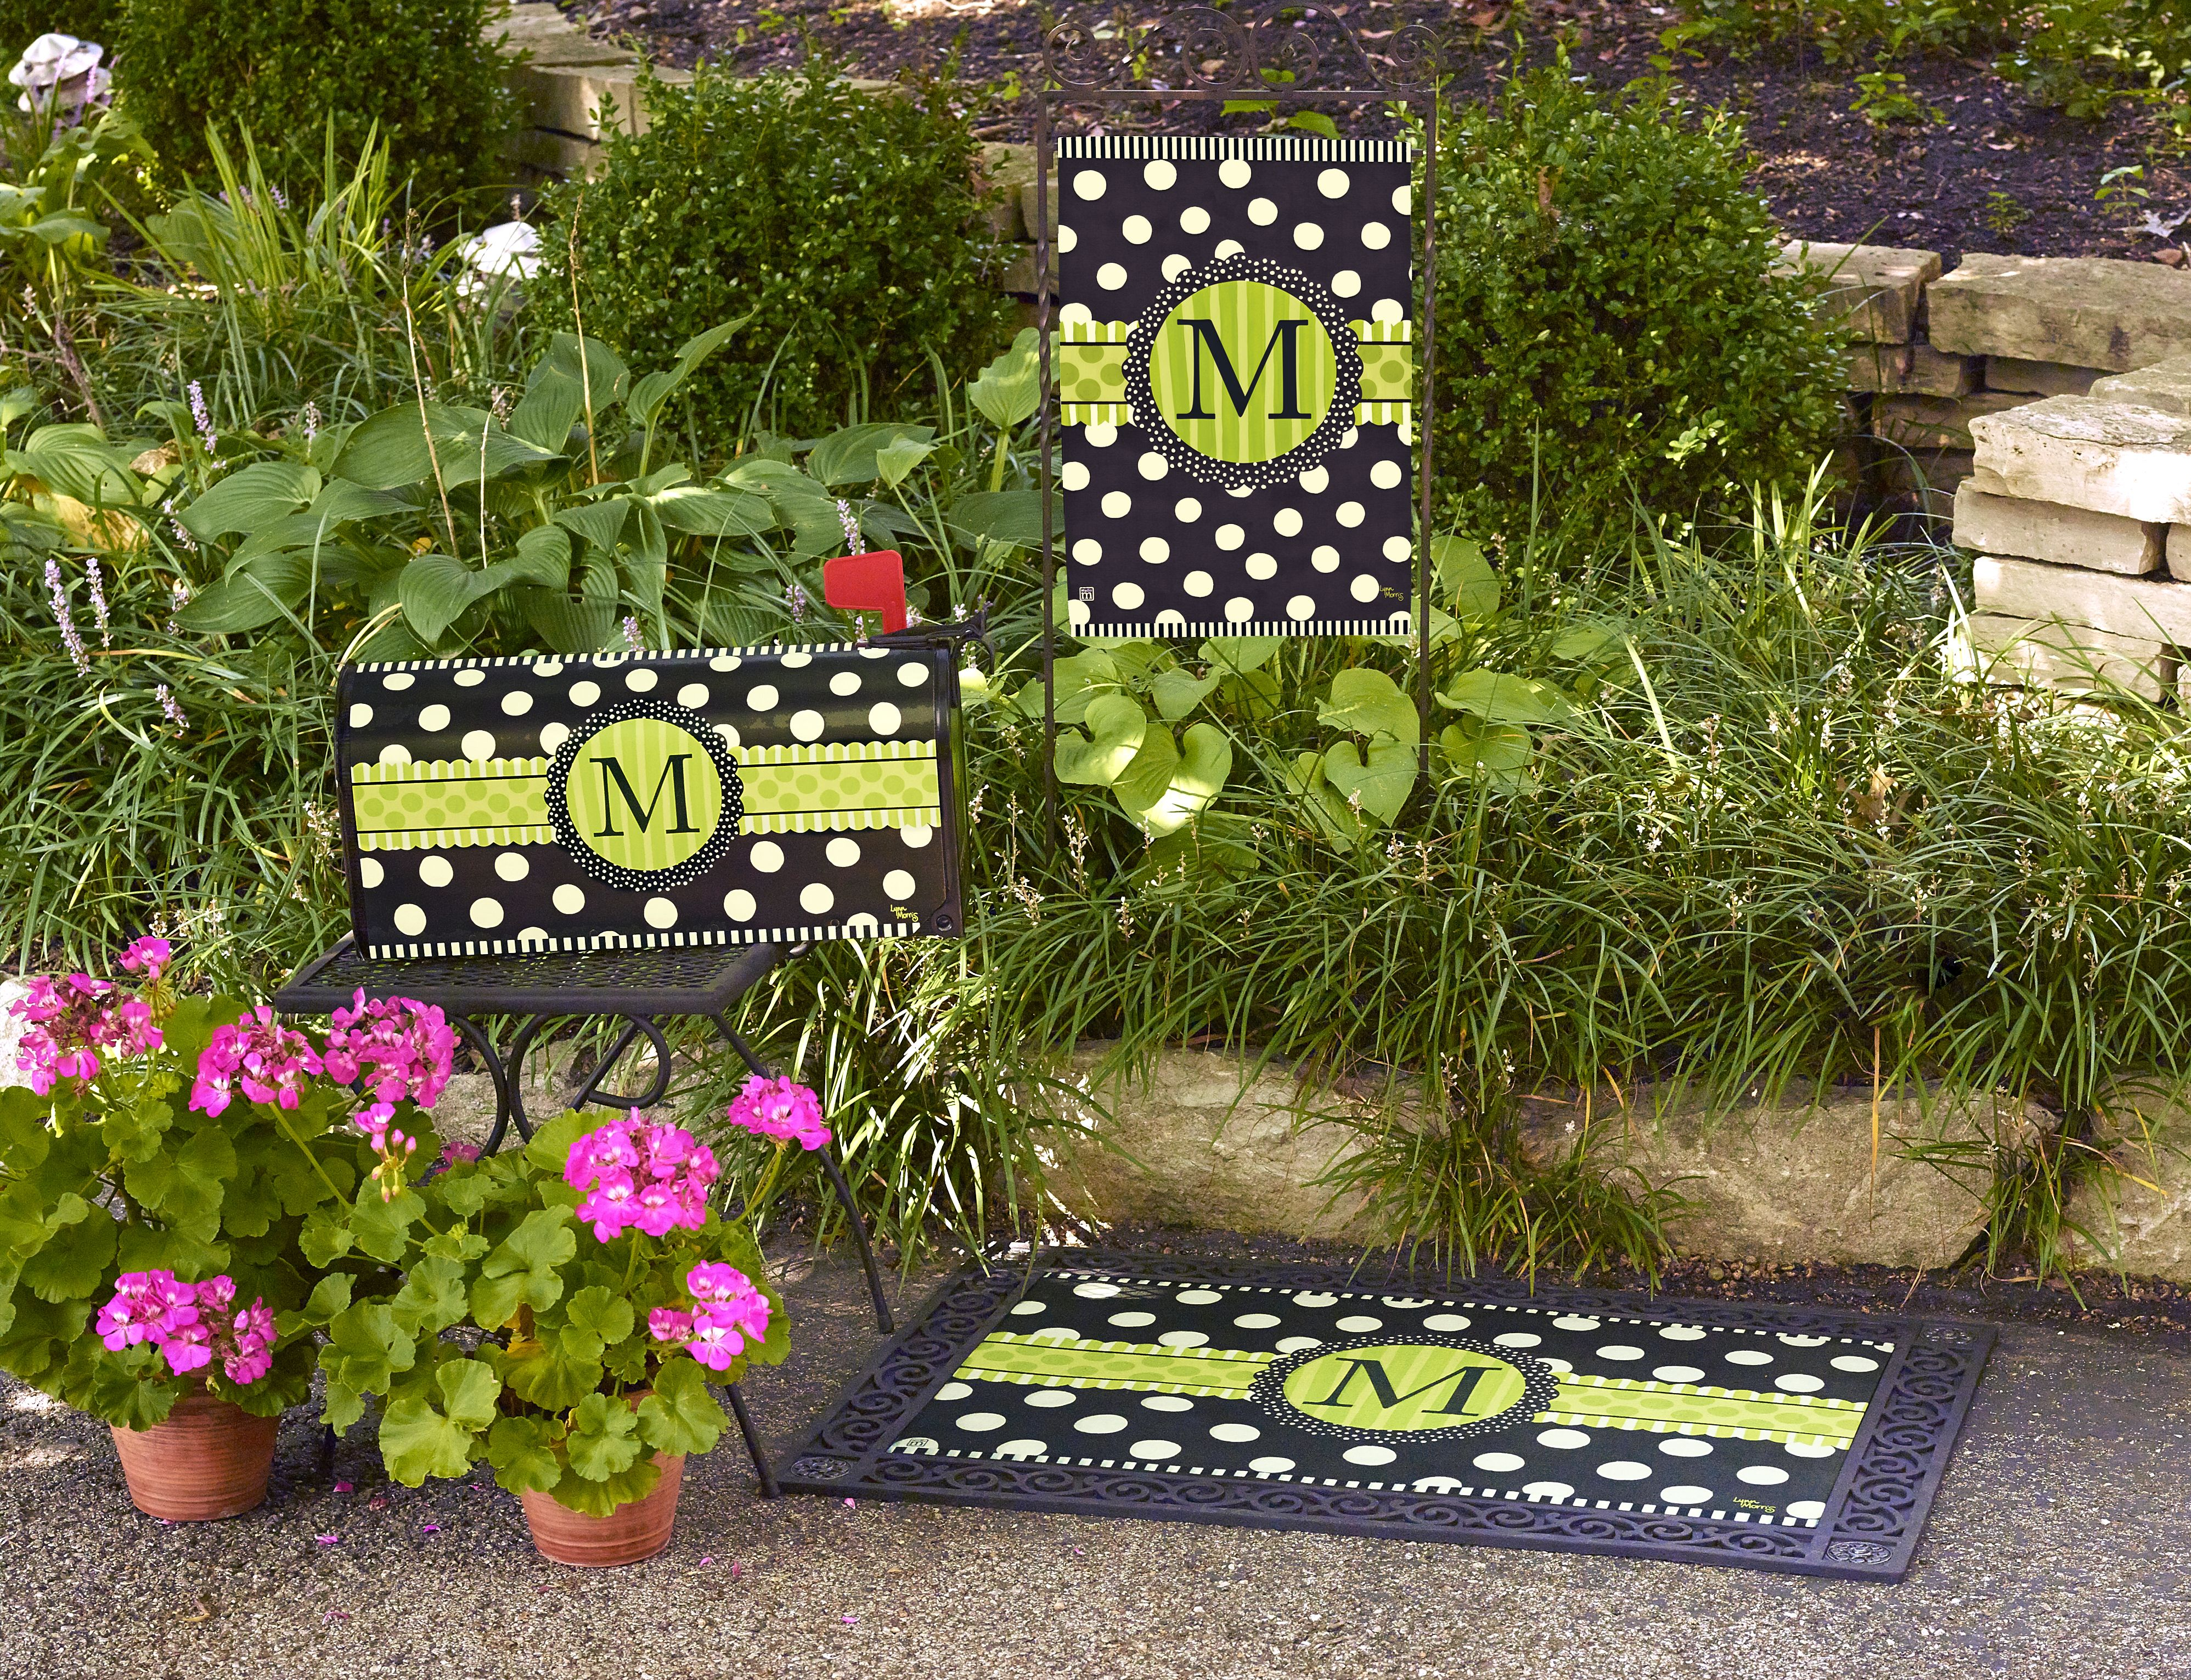 Studiom Is One Of The Top Outdoor Decor Companies Their Products Range From Decorative Flags Mats And Mailbox Covers To Ar Flag Decor Art Pole Garden Items